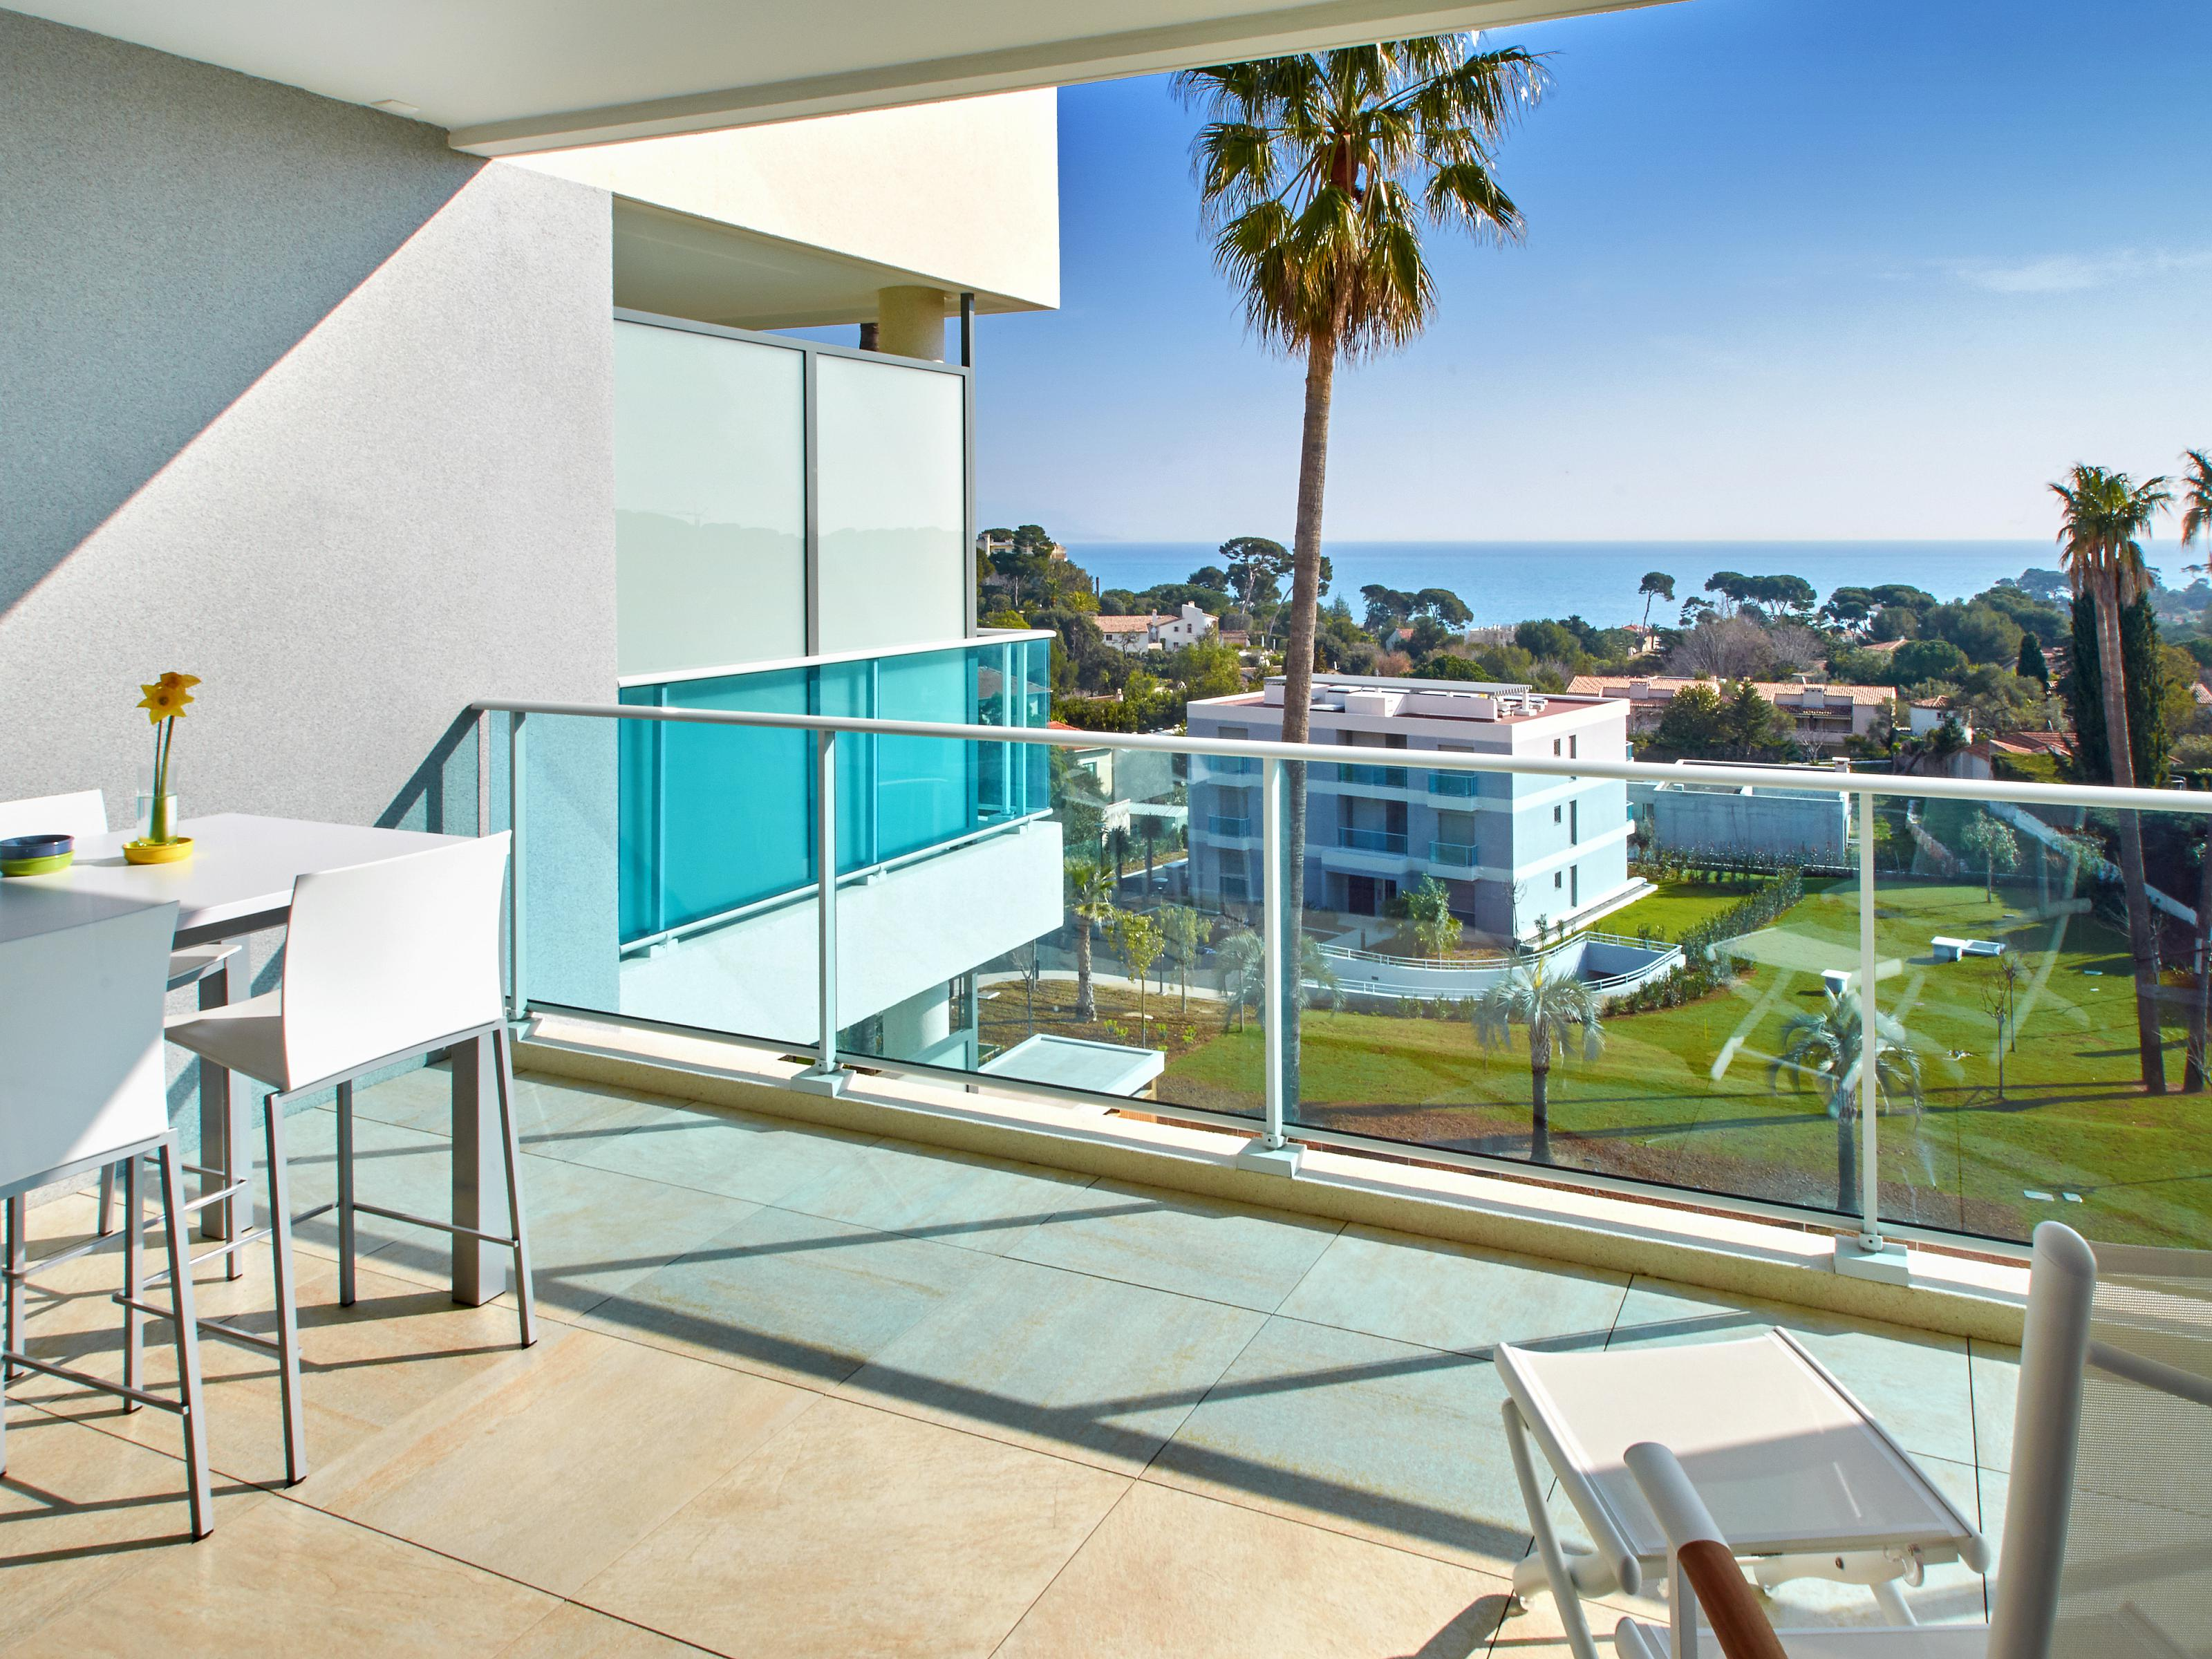 Single Family Home for Sale at Apartment - Cap D'Antibes - sea view Cap D'Antibes, Provence-Alpes-Cote D'Azur 06160 France